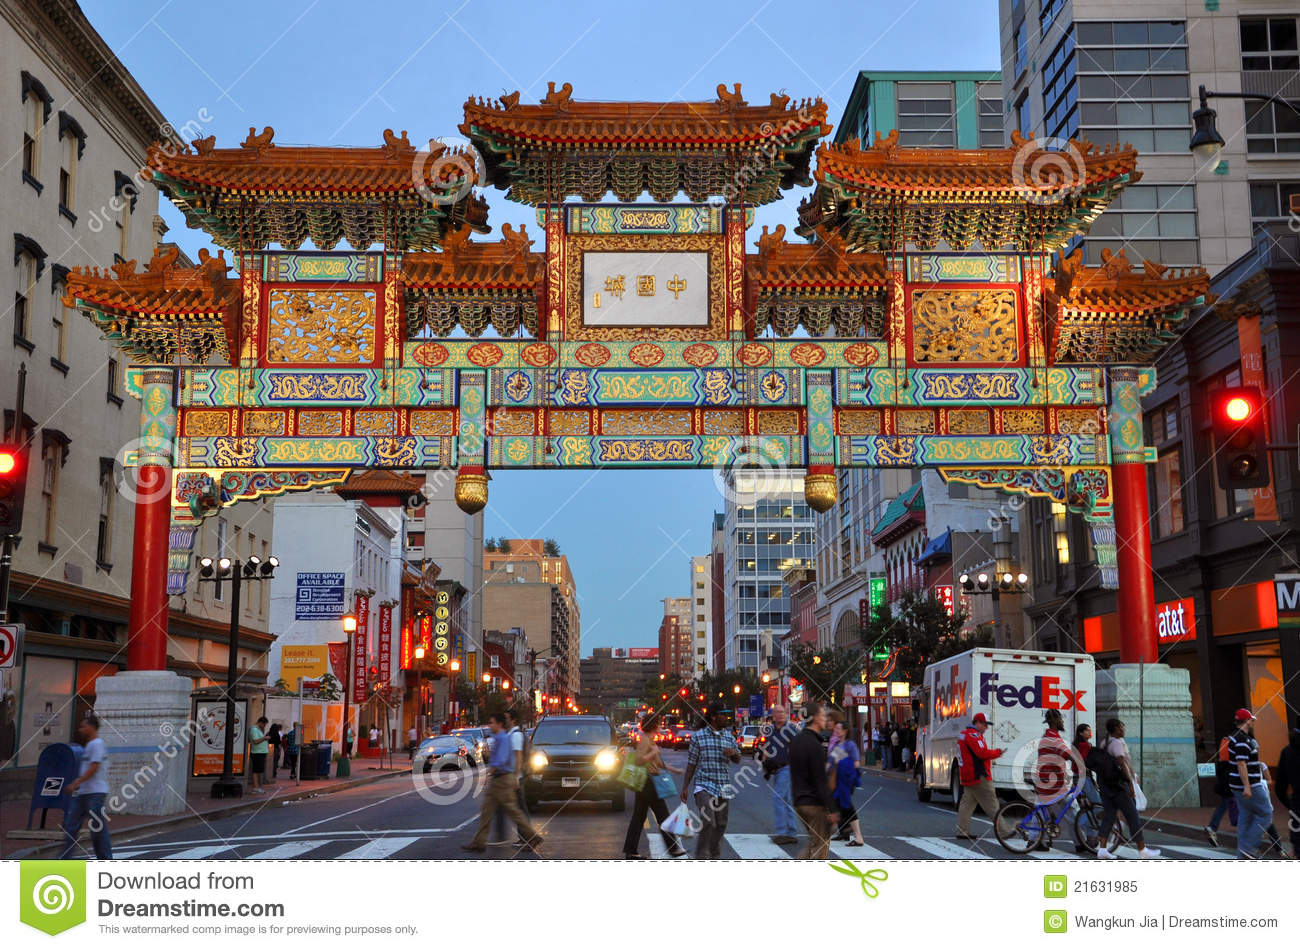 Royalty Free Stock Photo Washington Chinatown Night Dc Usa Image21631985 on 3d art deco architecture